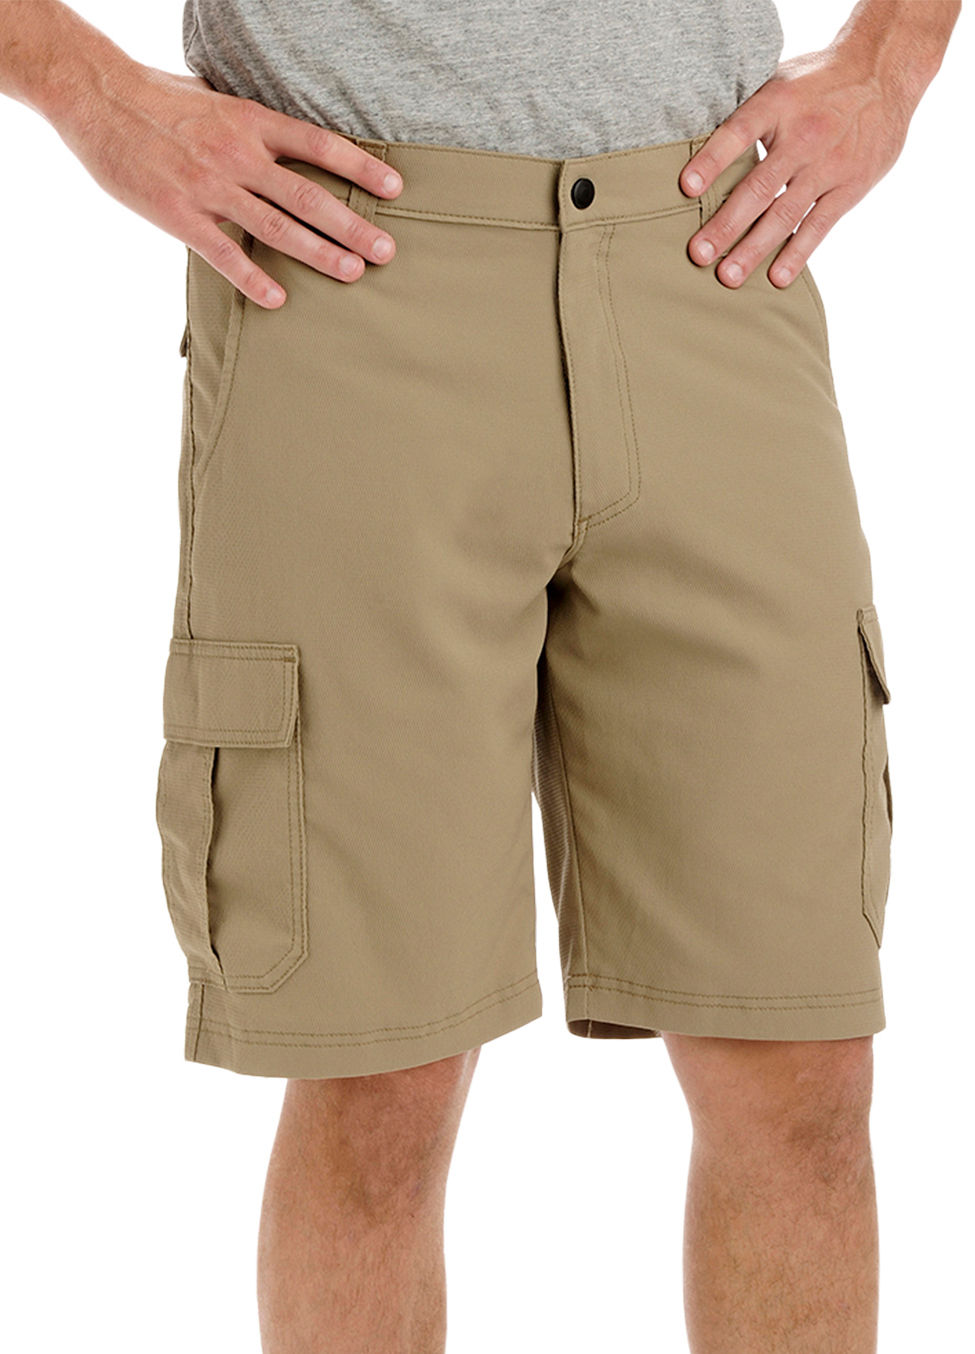 53d238c43b Lee Men's Big and Tall Dungarees Performance Cargo Short - Choose Sz/color  Lion 50. About this product. Picture 1 of 2; Picture 2 of 2